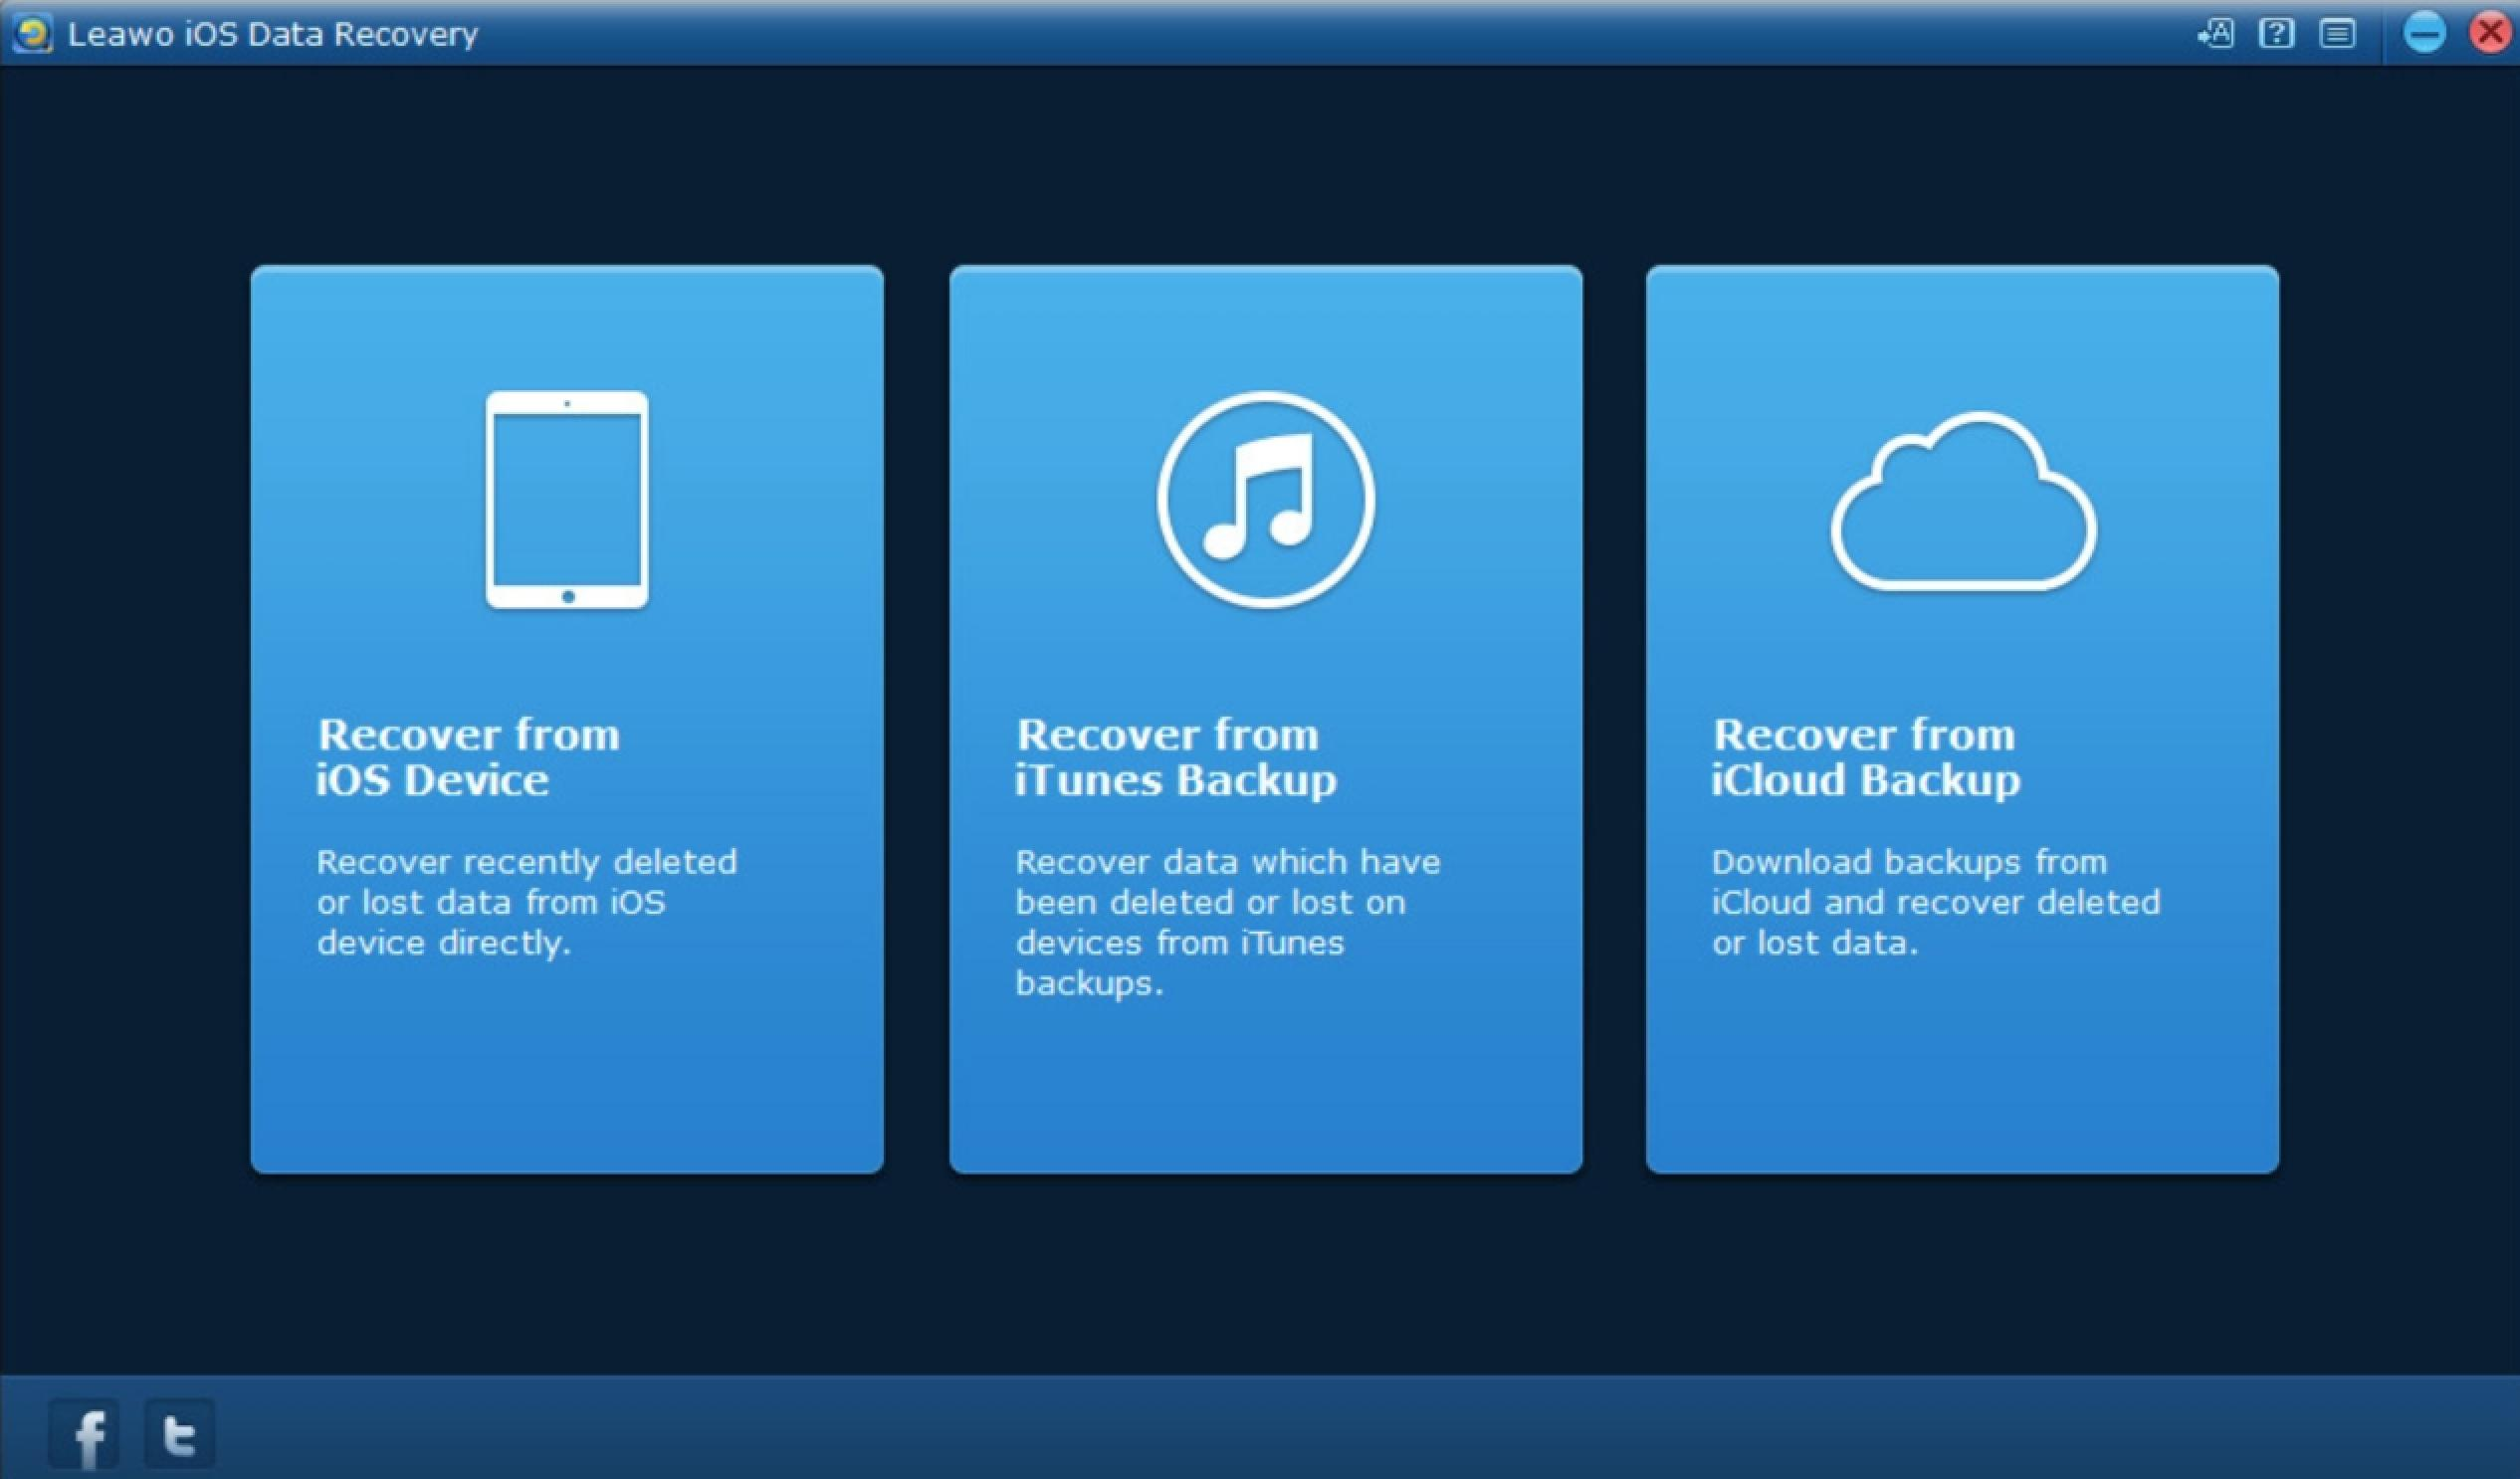 recover-from-leawo-ios-data-recovery-01